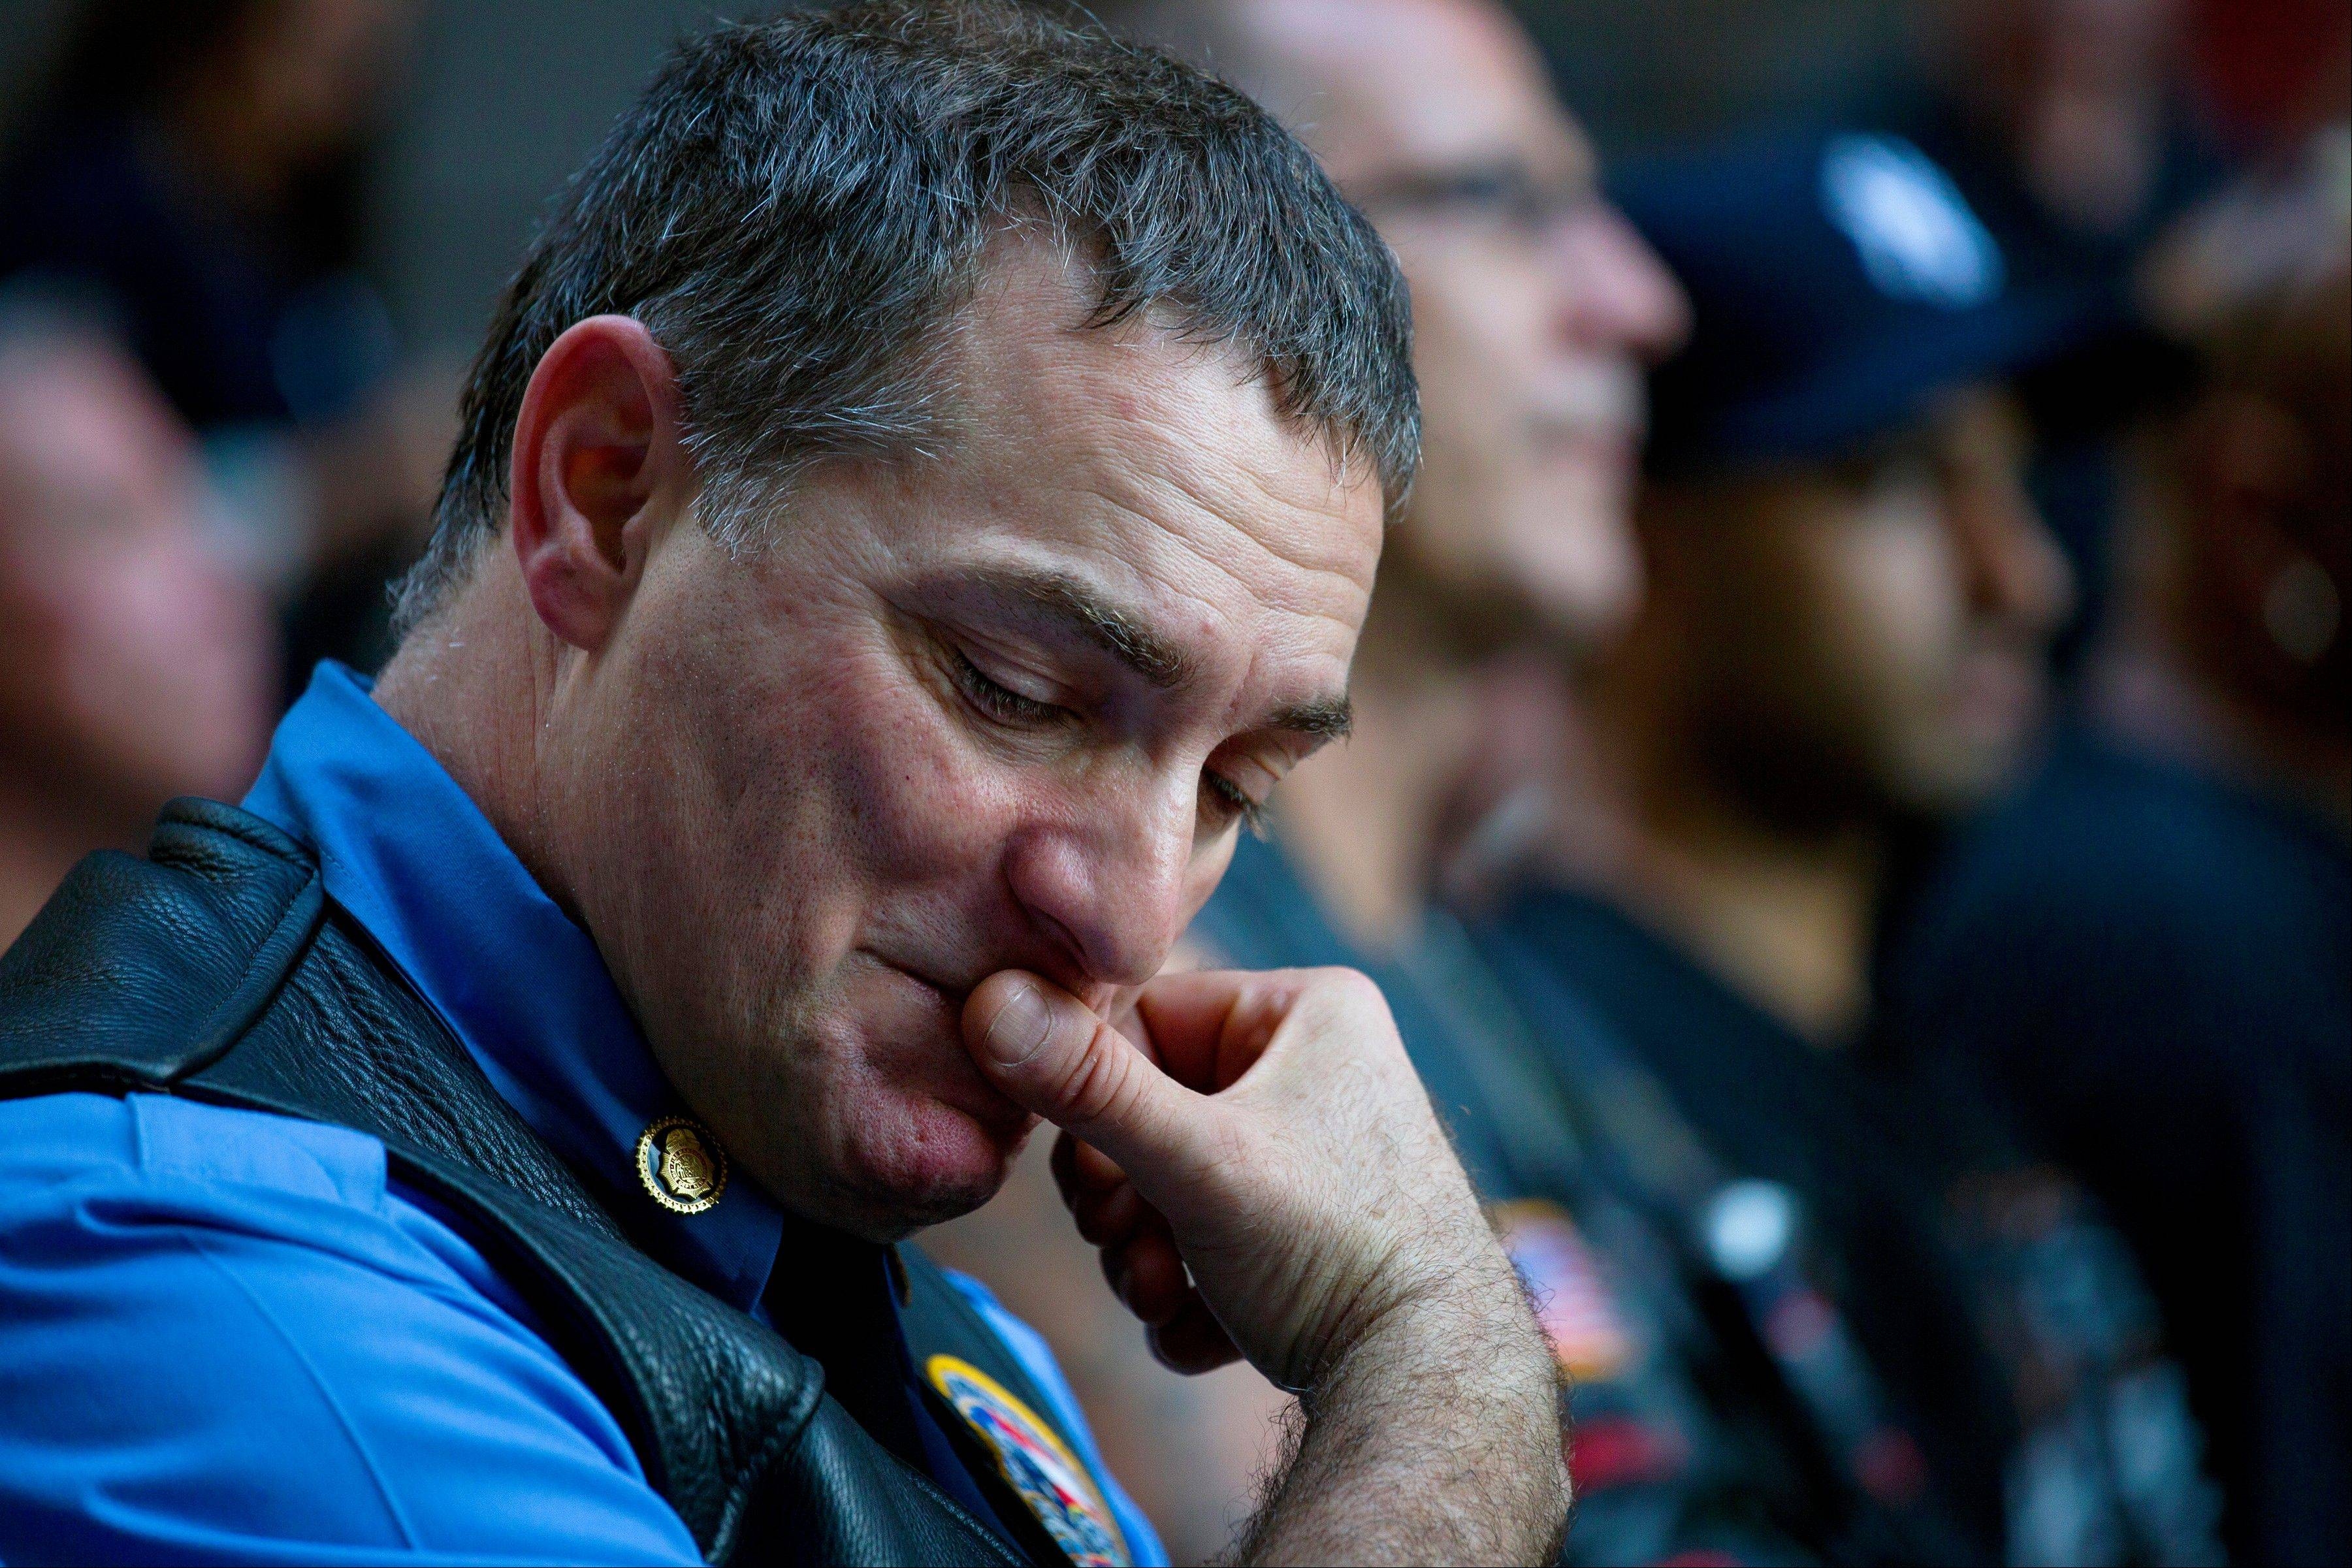 Retired FDNY Marshal, Ernie Medaglia, of Bronxville, N.Y., who was at the attacks at the World Trade Center on Sept. 11, 2001, listens to New York Gov. Andrew Cuomo at a ceremony near the 9/11 Memorial honoring first responders and FDNY Rescue 1 on the 12th anniversary of the attacks on the World Trade Center in New York Wednesday, Sept. 11, 2013.